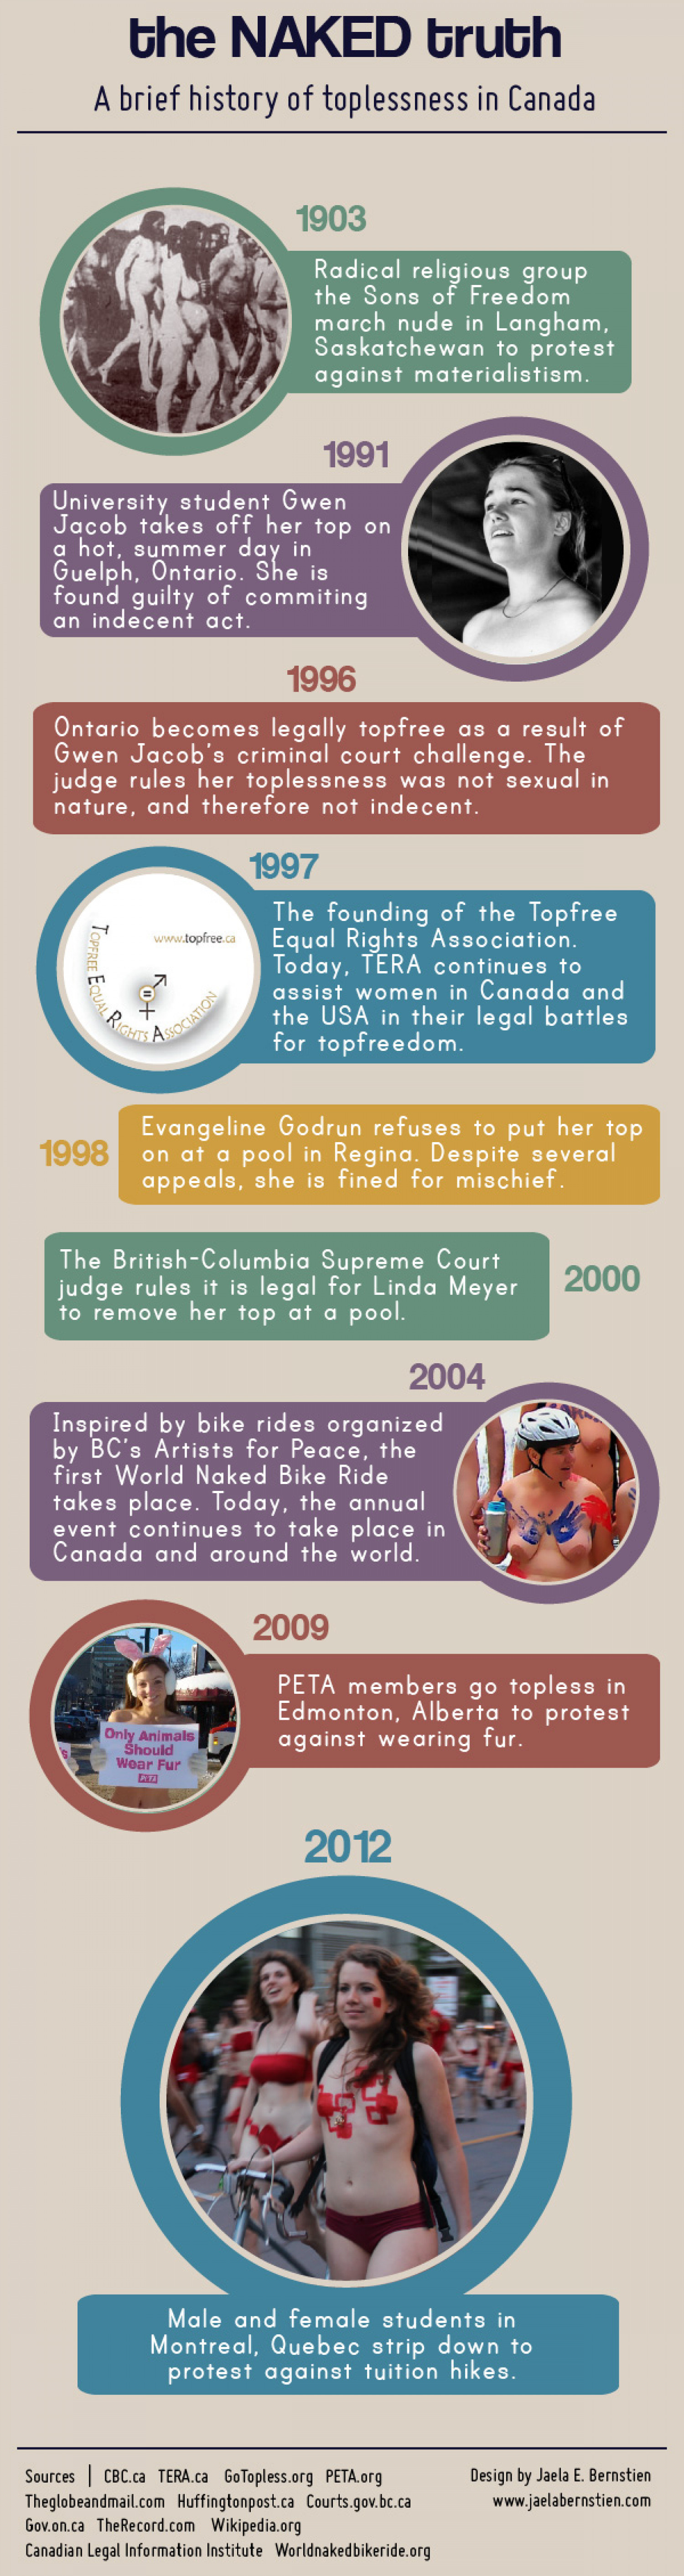 The Naked Truth: A brief history of toplessness in Canada Infographic